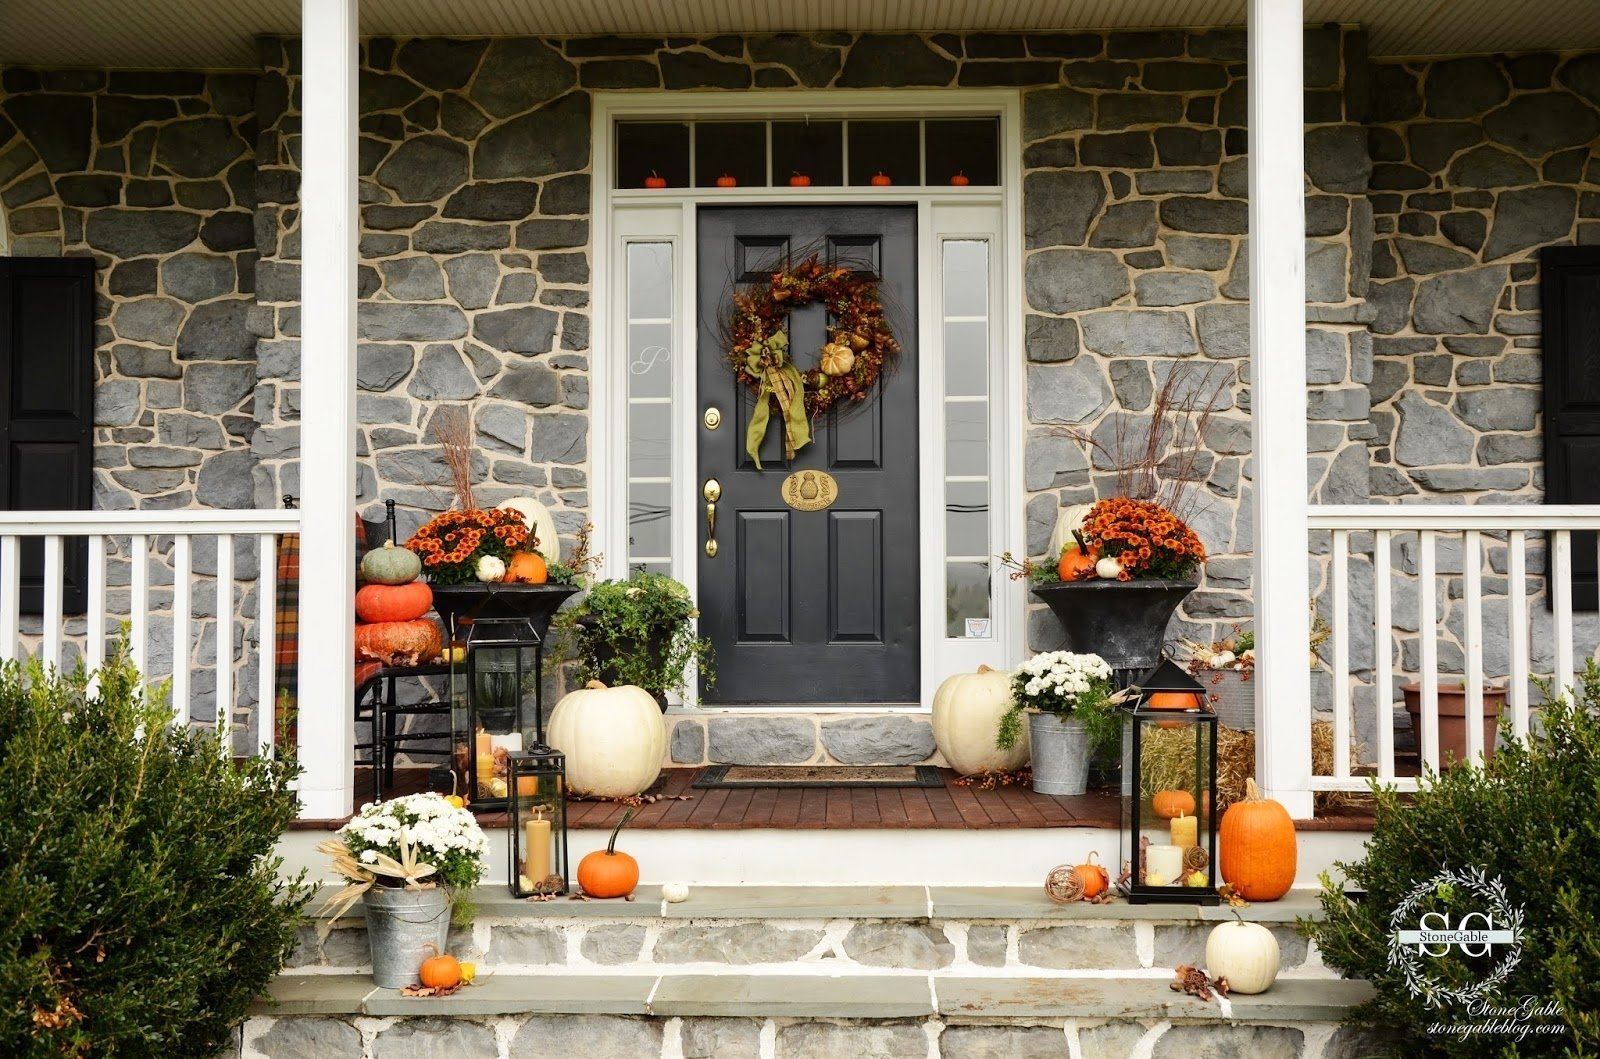 10 Cute Fall Front Porch Decorating Ideas fall on the front porch stonegable front porch fall decorating ideas 1 2020